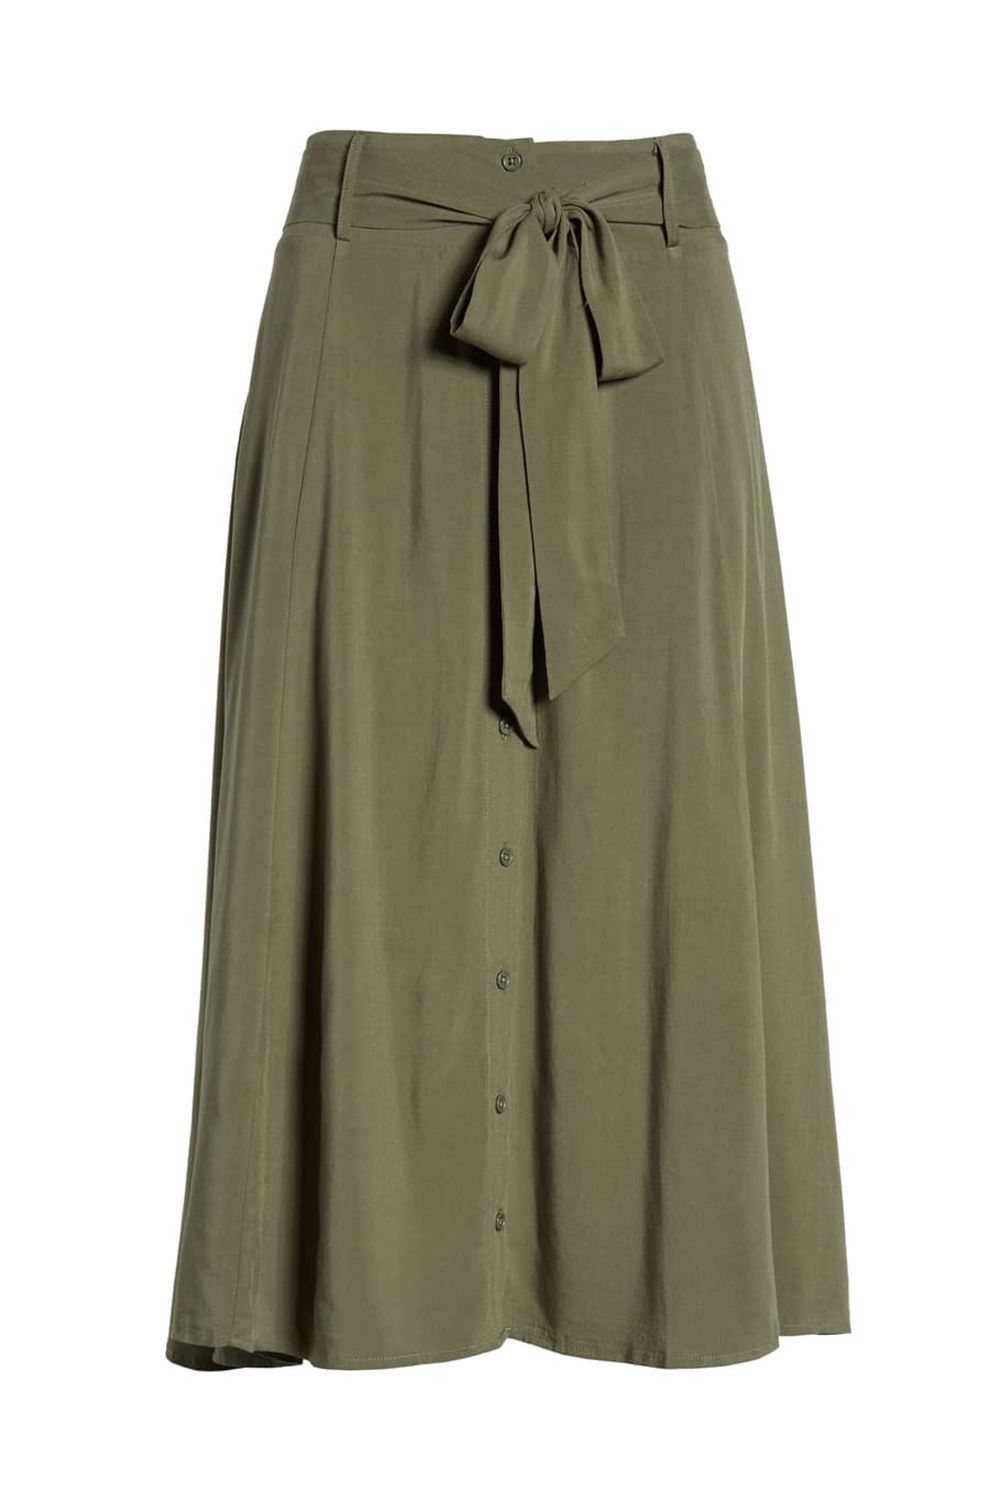 An Everyday Midi Skirt LOVE, FIRE nordstrom.com $52.00 SHOP IT An everyday skirt should be compatible with all your tops and shoes. Neutral colors, like this khaki green, are good additions to your spring wardrobe because they're a little more interesting than white and beige, but still versatile enough to wear with any color.